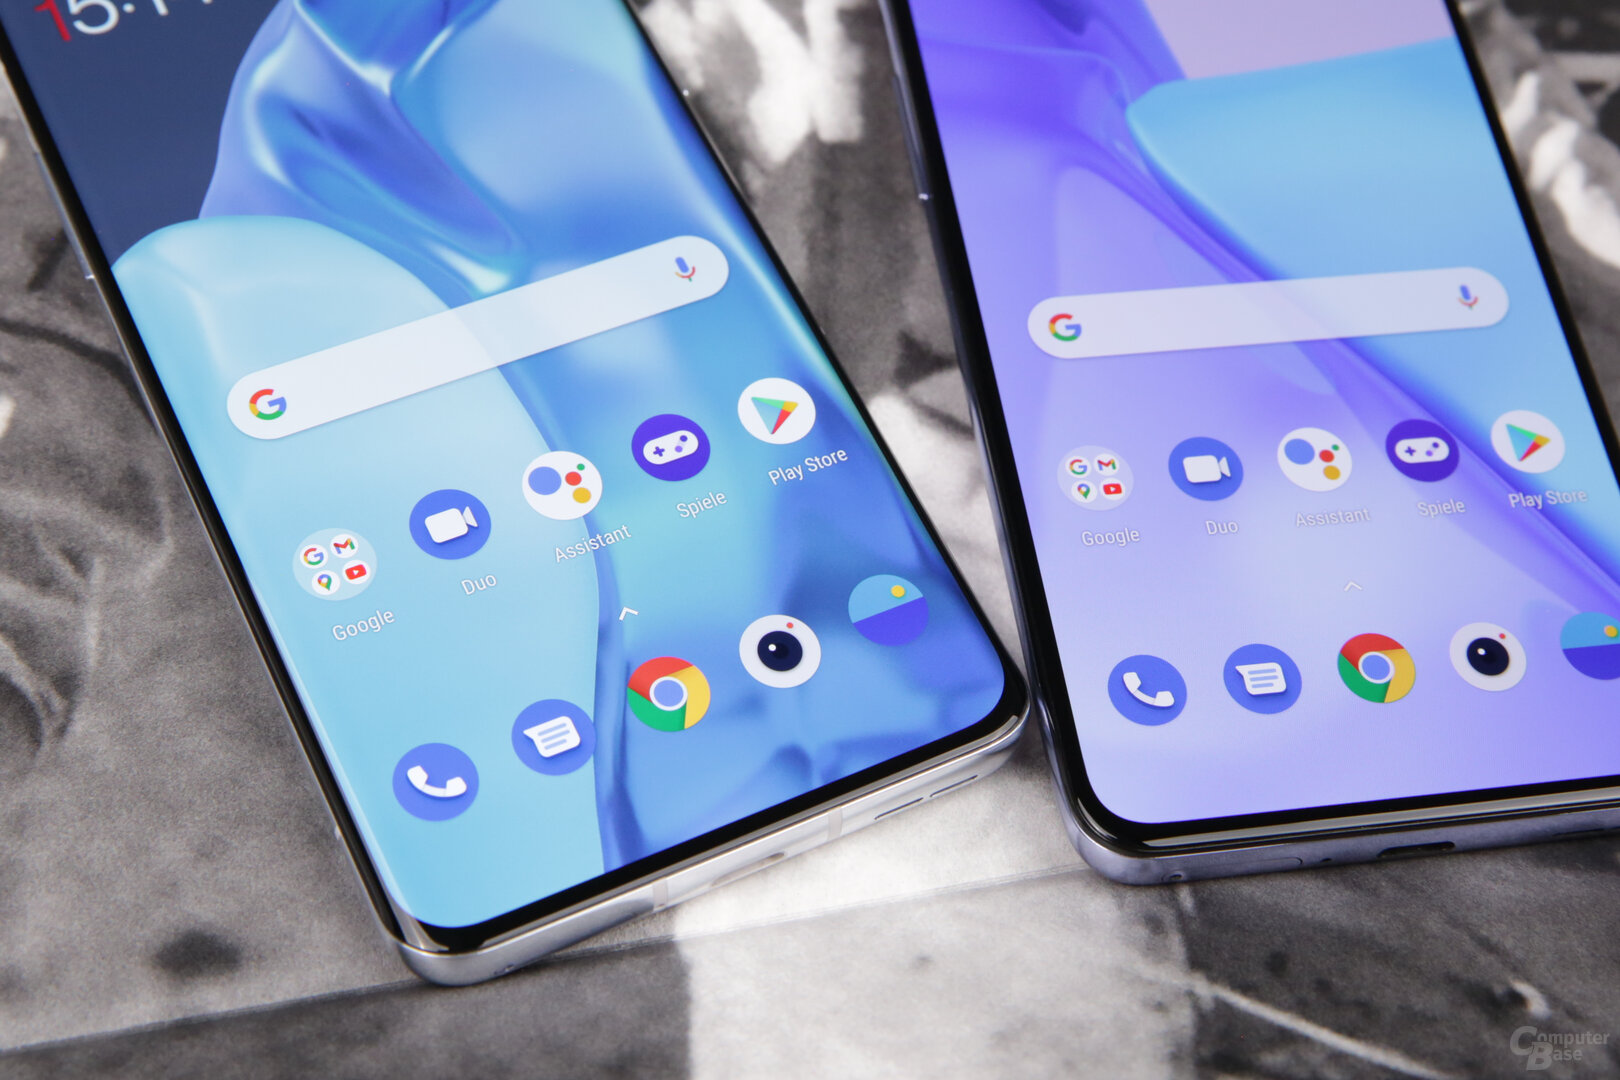 Das OnePlus 9 Pro (links) hat gekrümmte Displayränder